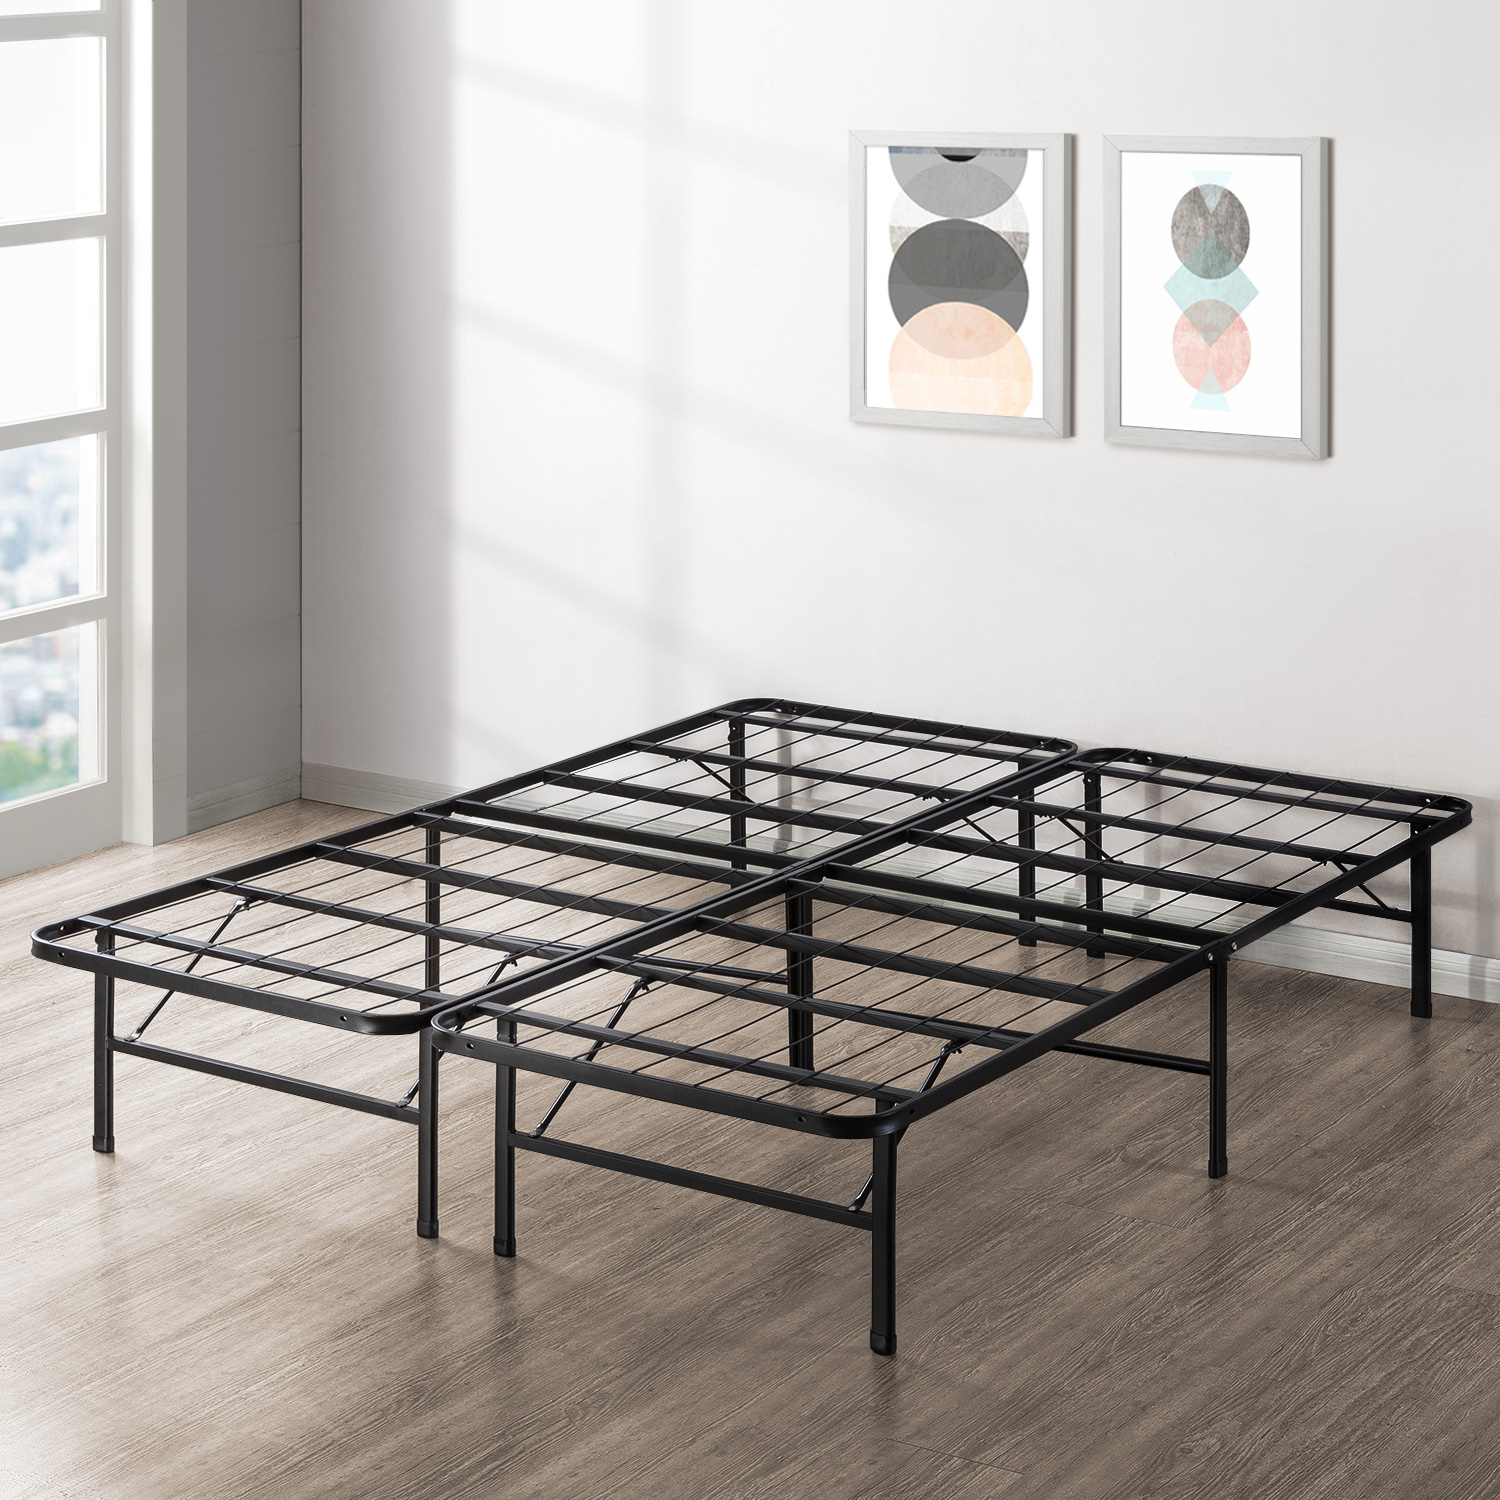 Mattress Platform Best Price Mattress Innovative Steel Platform Bed Frame Multiple Sizes